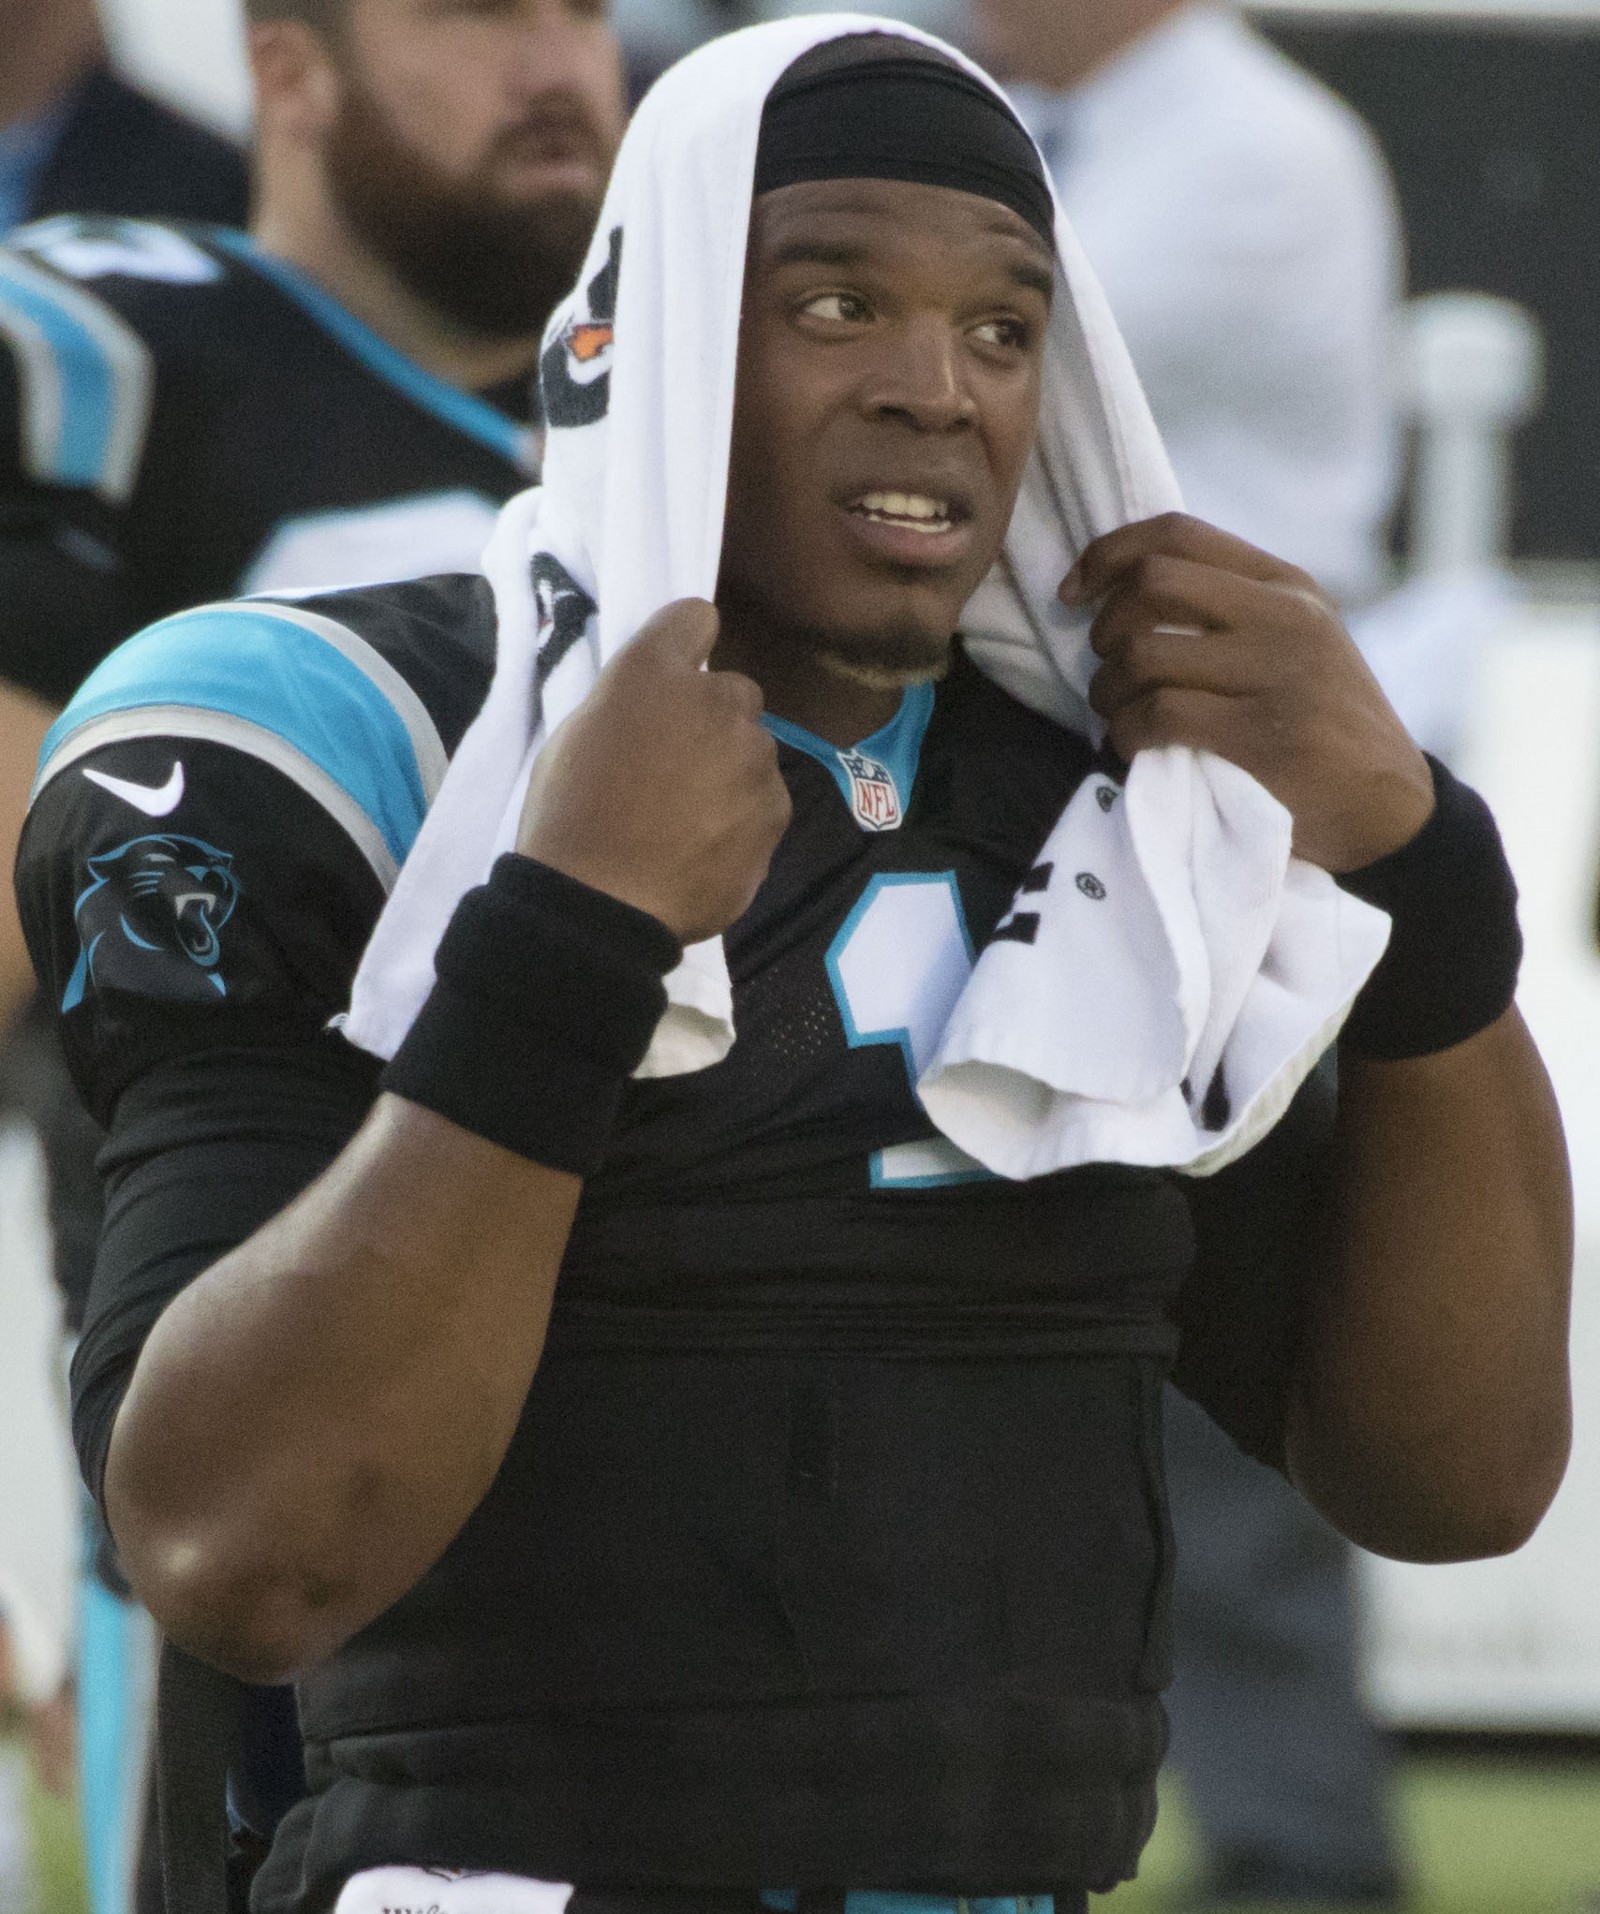 ac16e78ff8ed Cam Newton s Blunder Is a Prime Example of Why You Should Think Before You  Speak